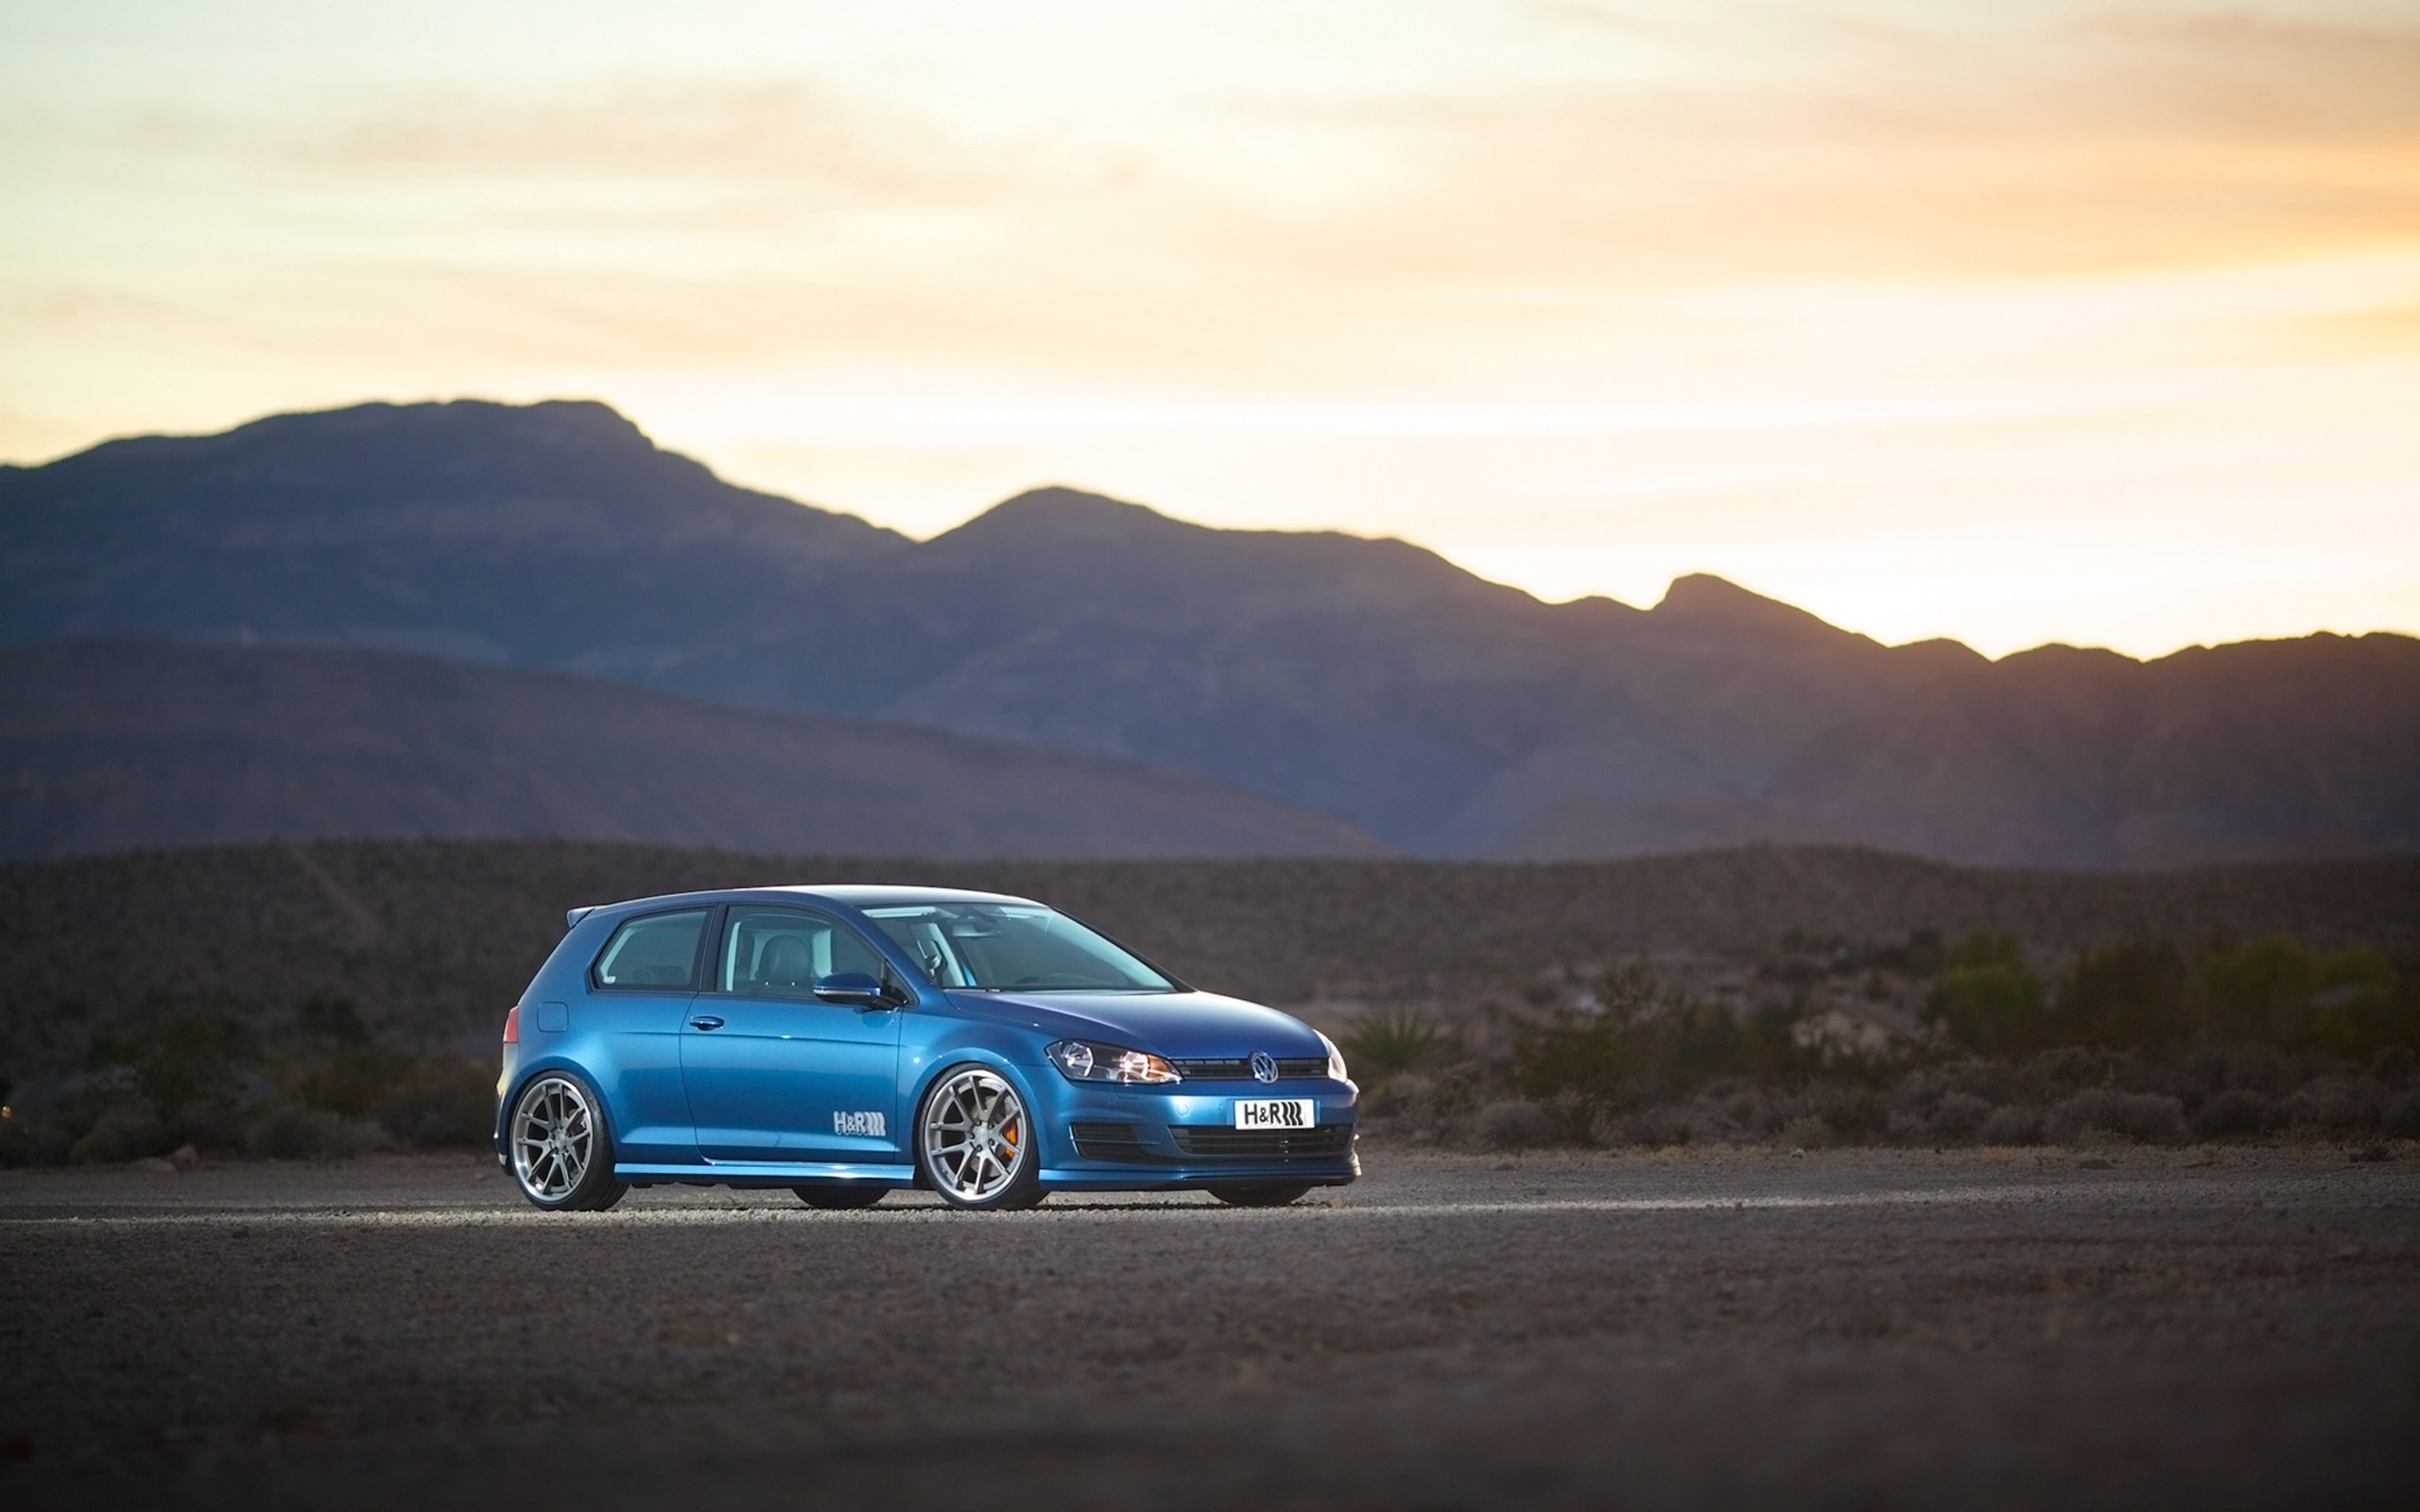 48 2015 Golf R Wallpapers On Wallpapersafari